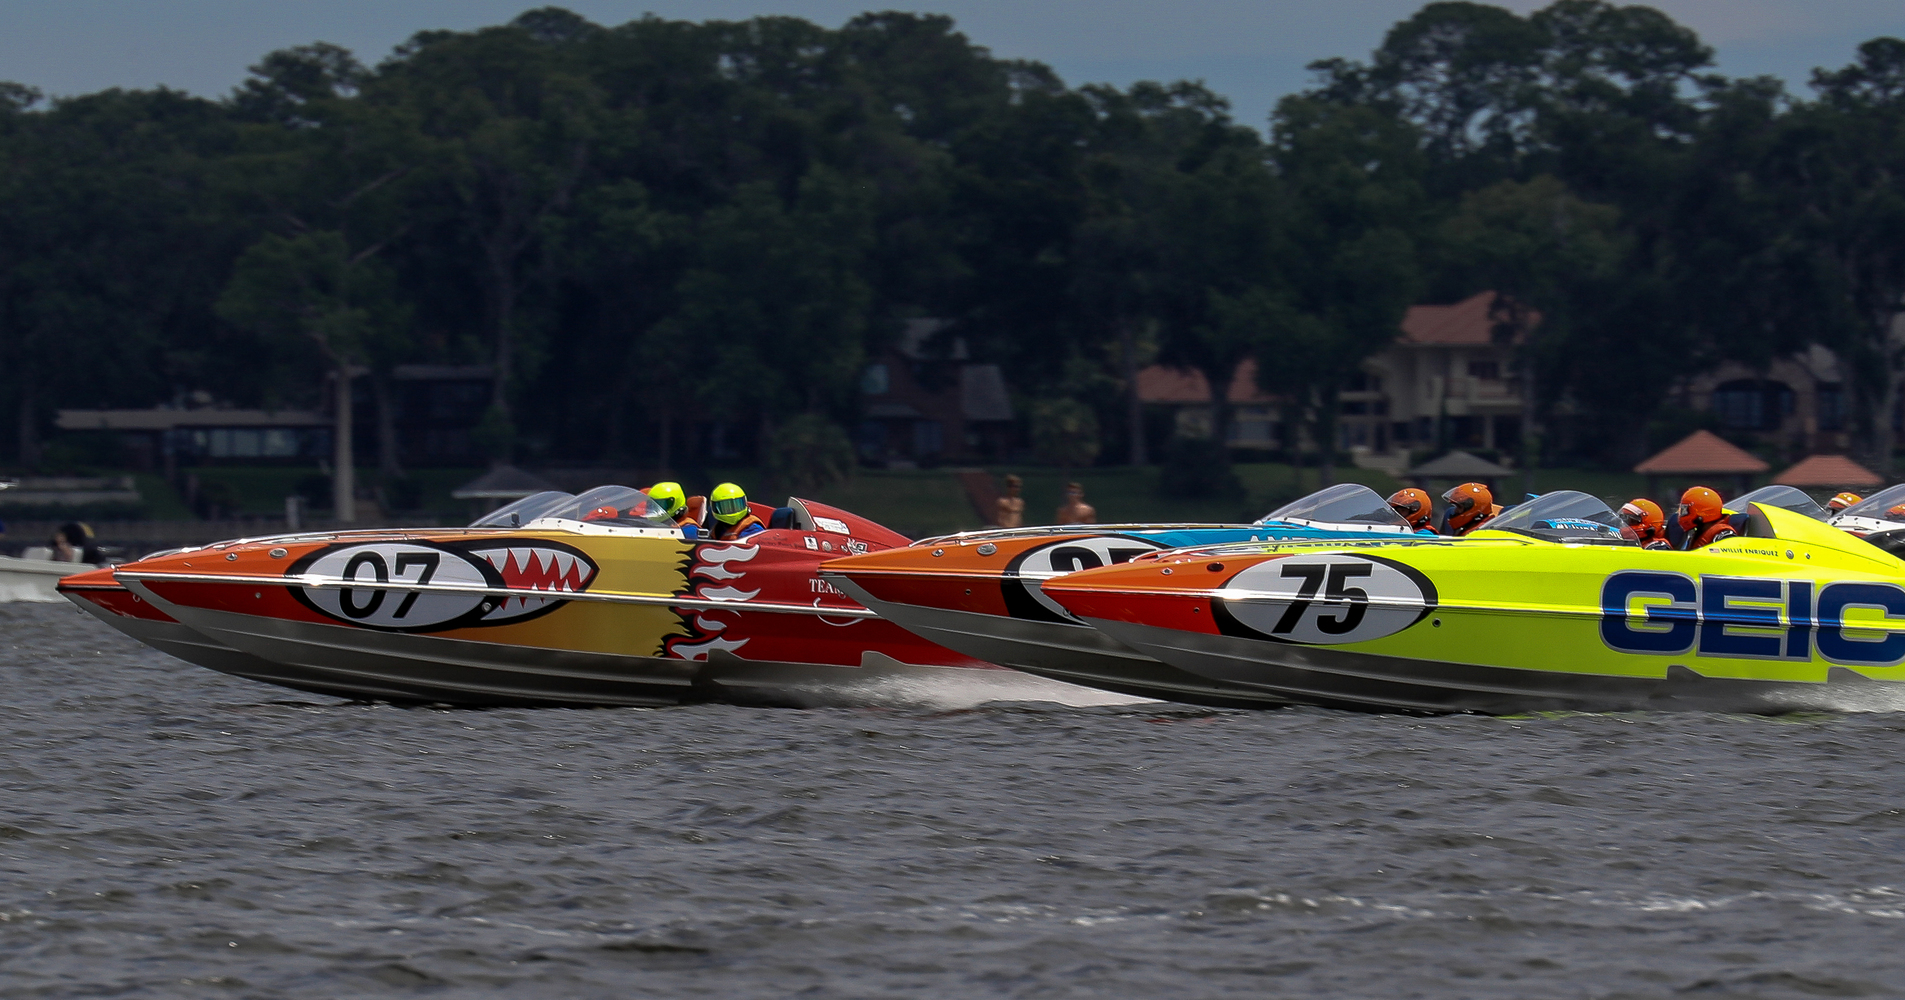 The 2018 SuperStock USA Championship will comprise of five rounds